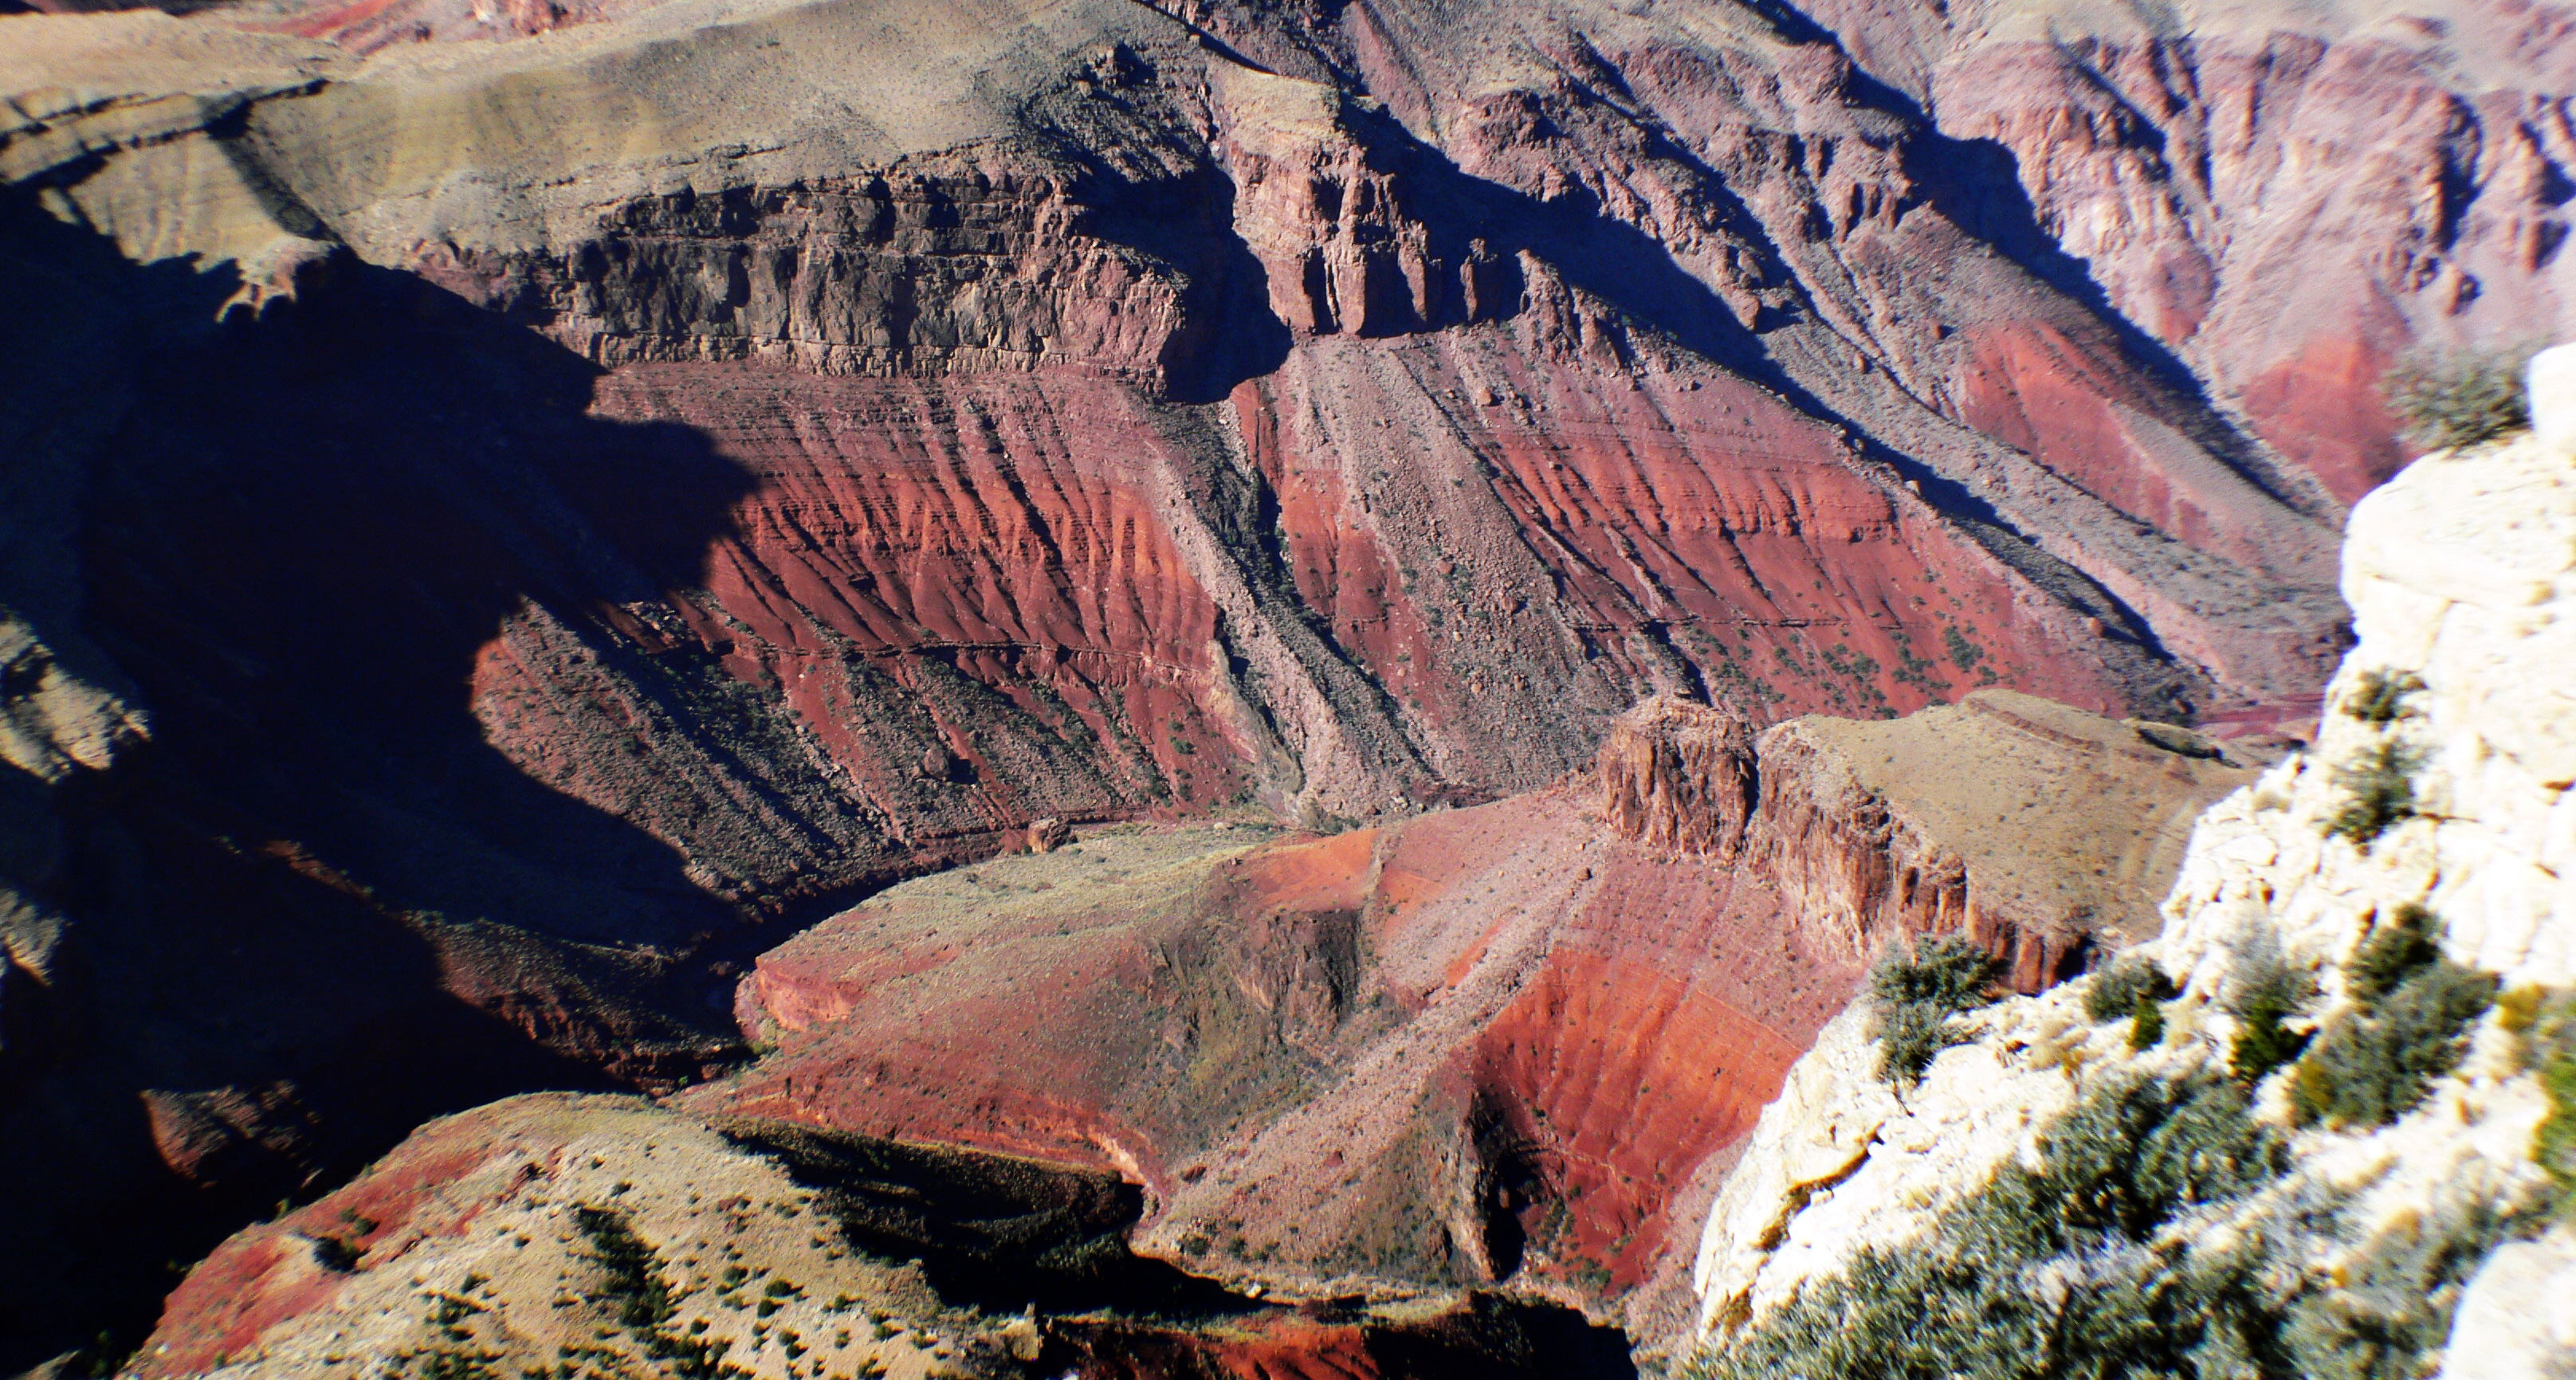 The Grand Canyon., Red rocks, Outdoor, Scenery, US National Parks, HQ Photo